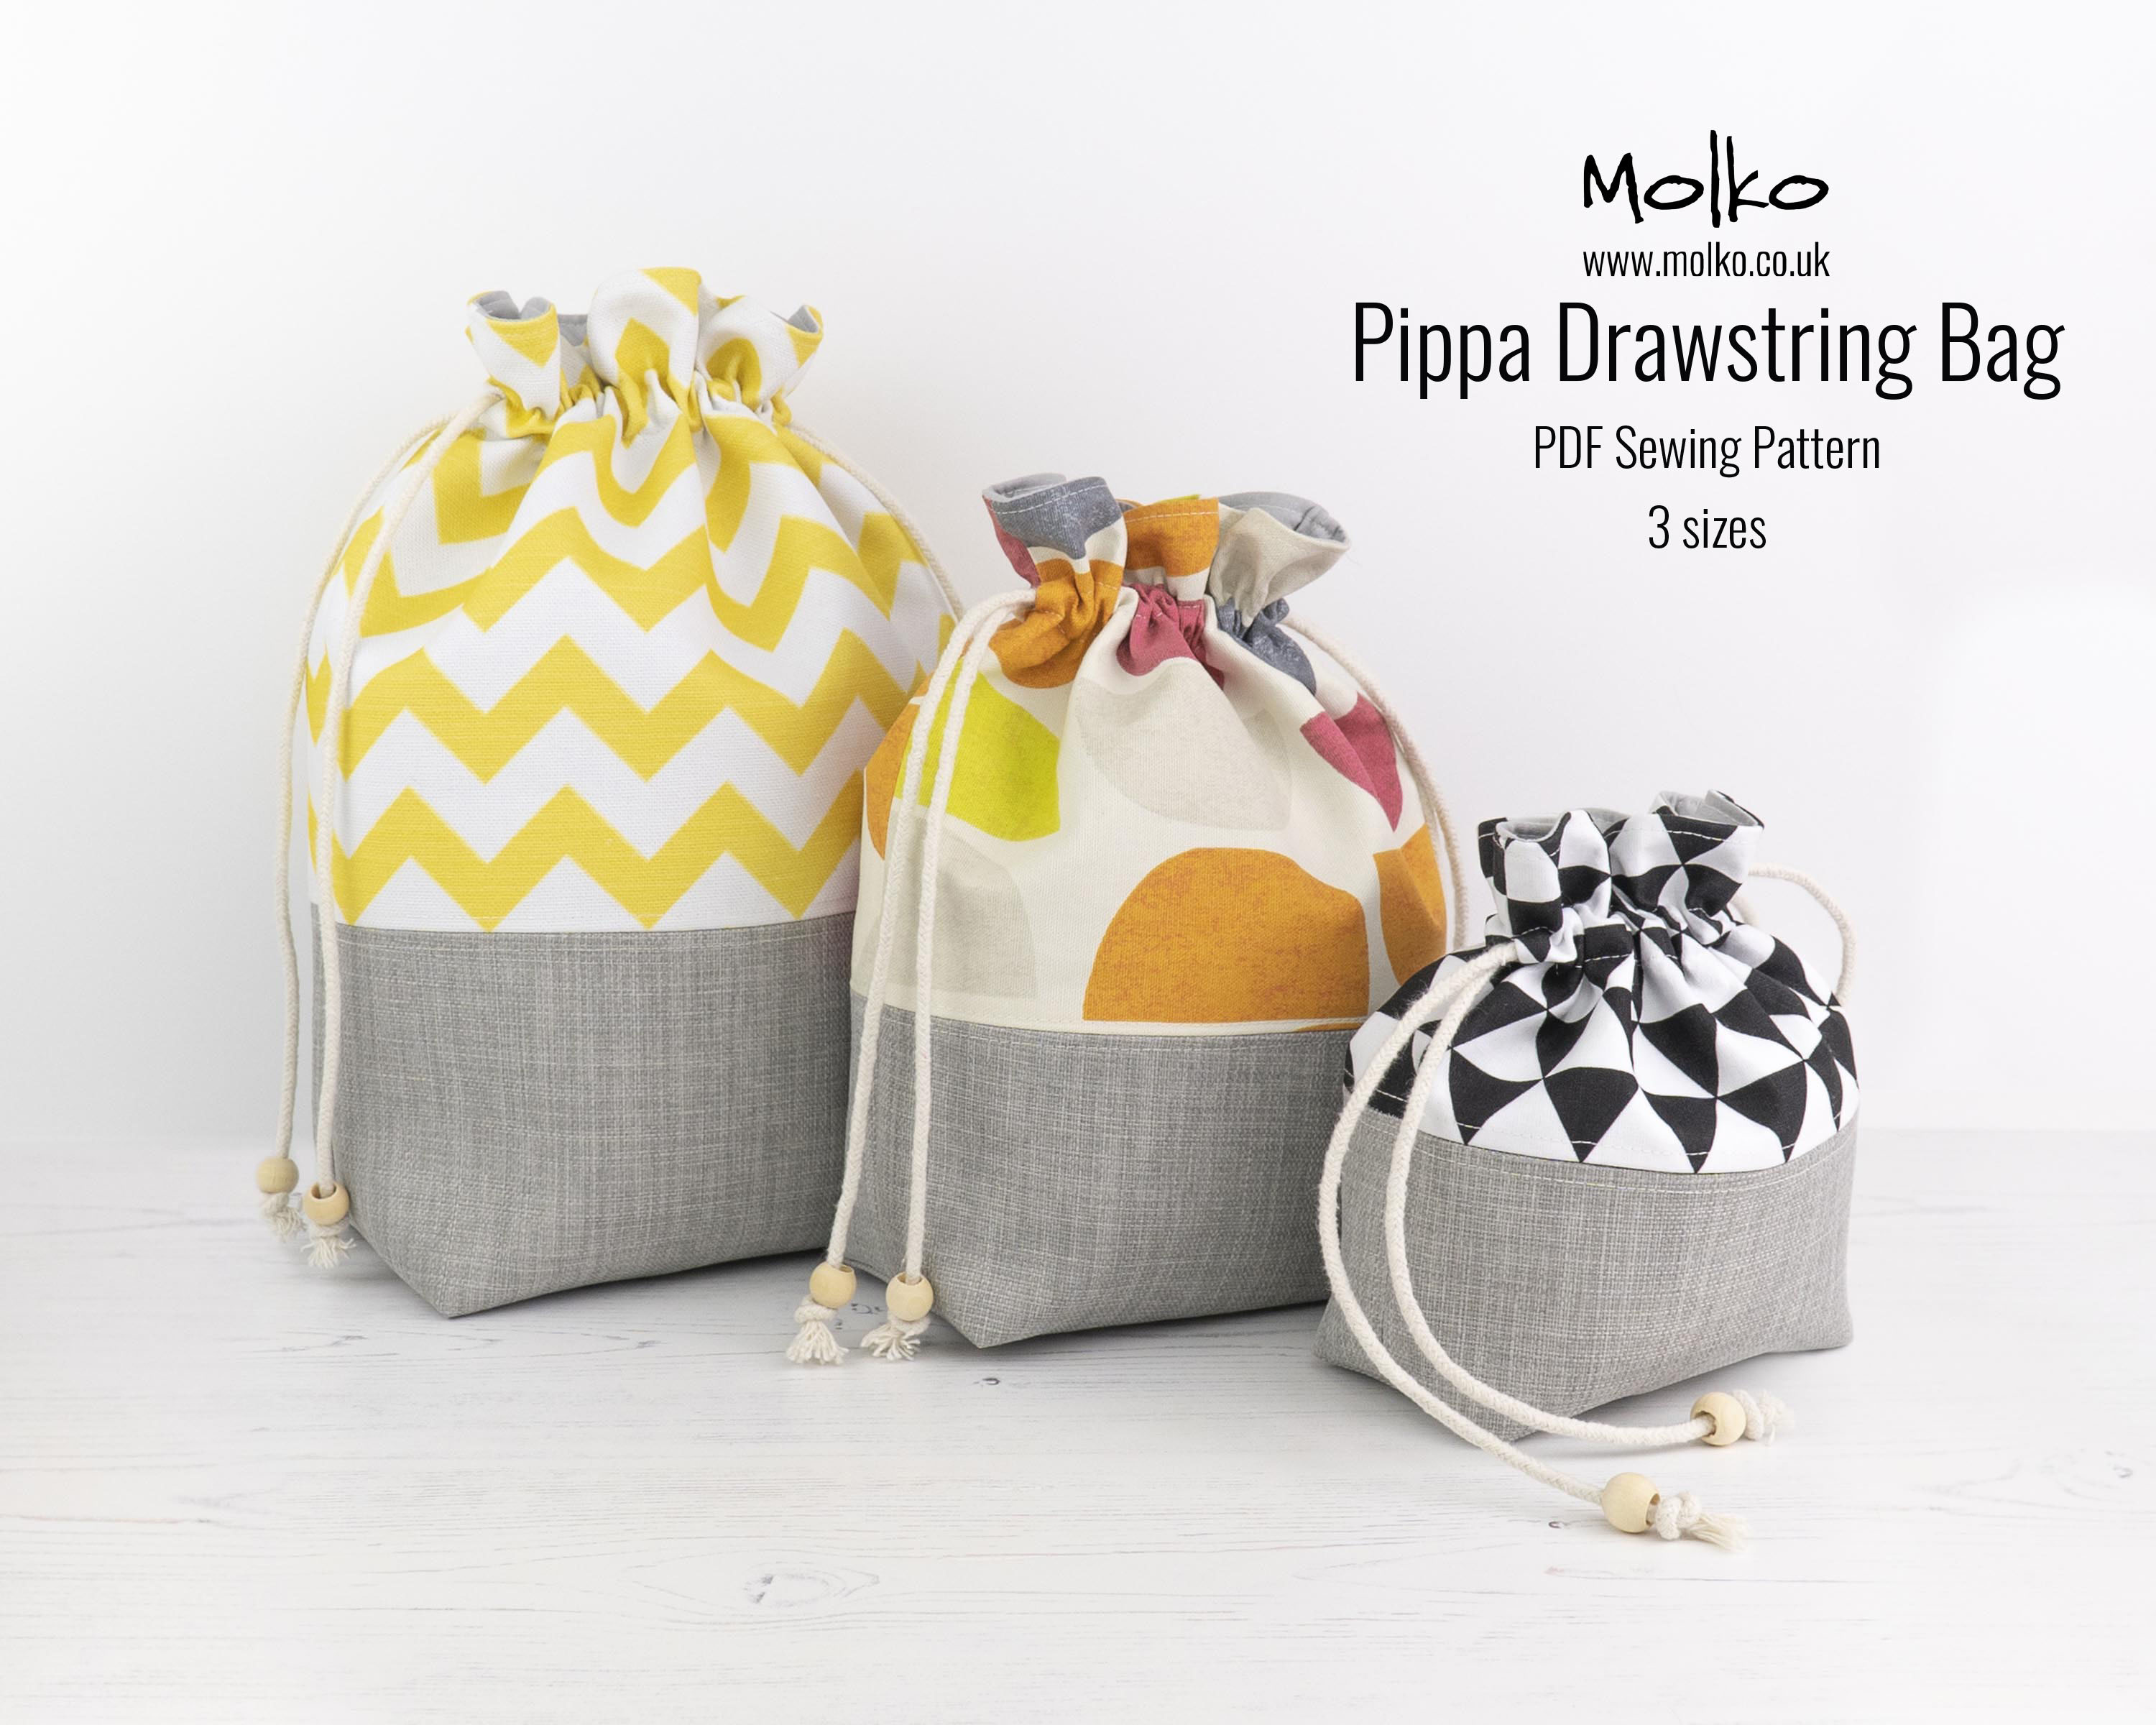 PIPPA DRAWSTRING BAG PDF MOLKO.CO (23)